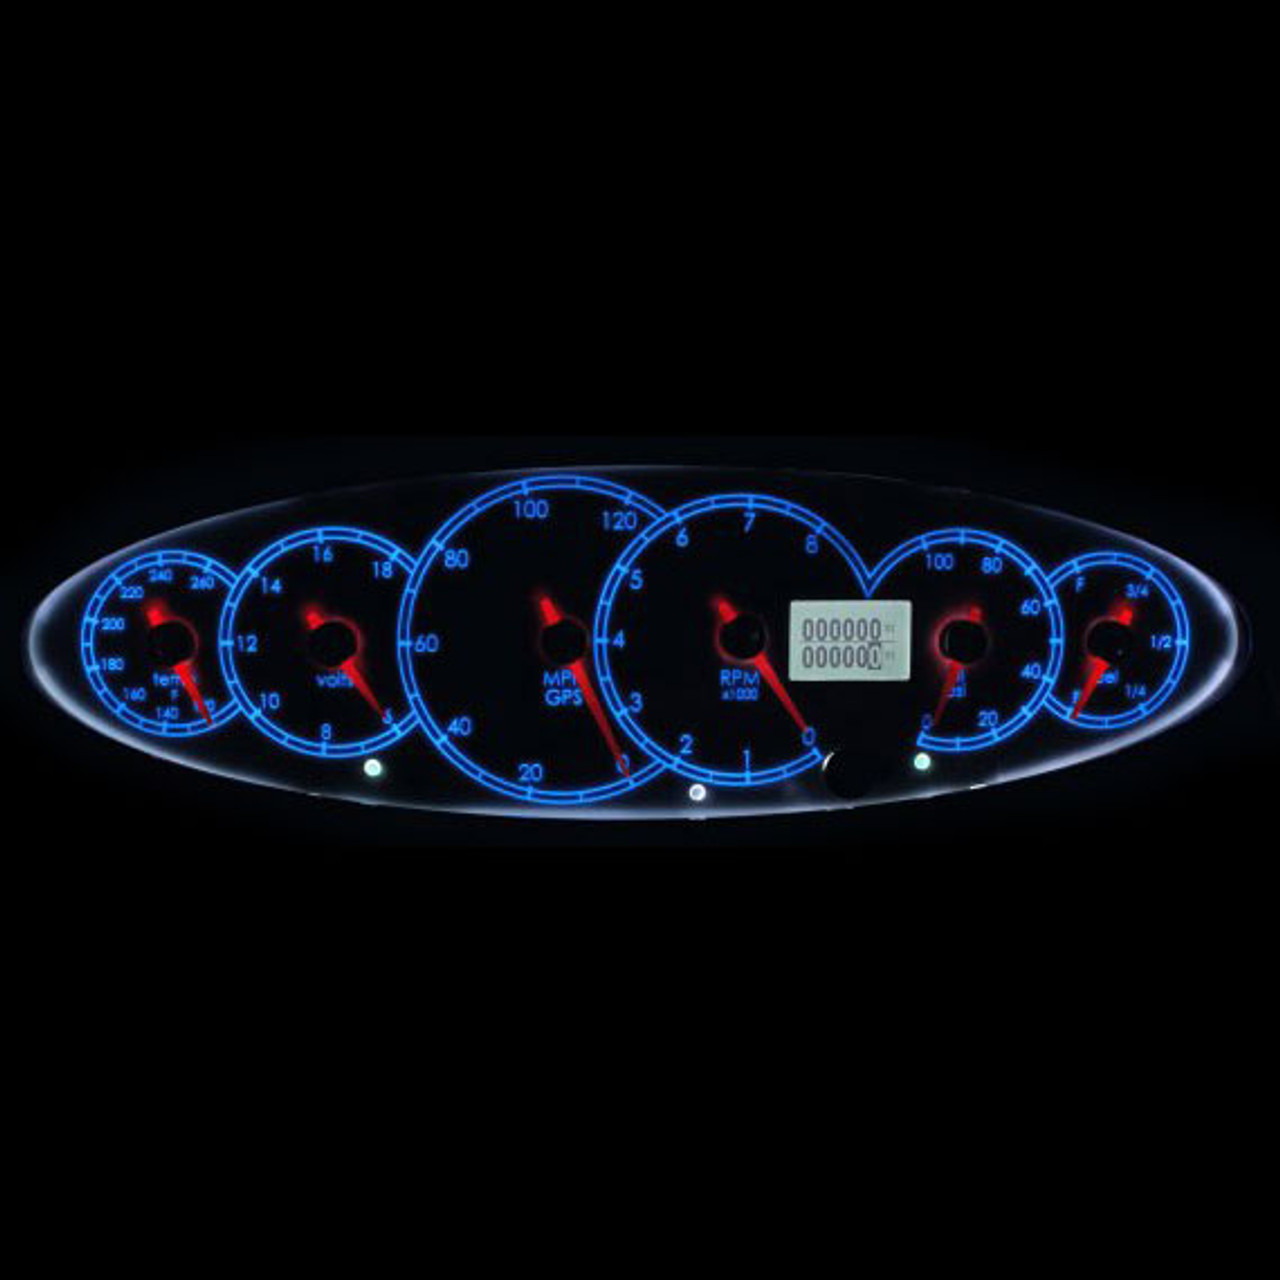 Legends - Icon - 6 in 1 Cluster (Silver dial with Dark Blue font, Chrome Blade Racer Red Pointer)